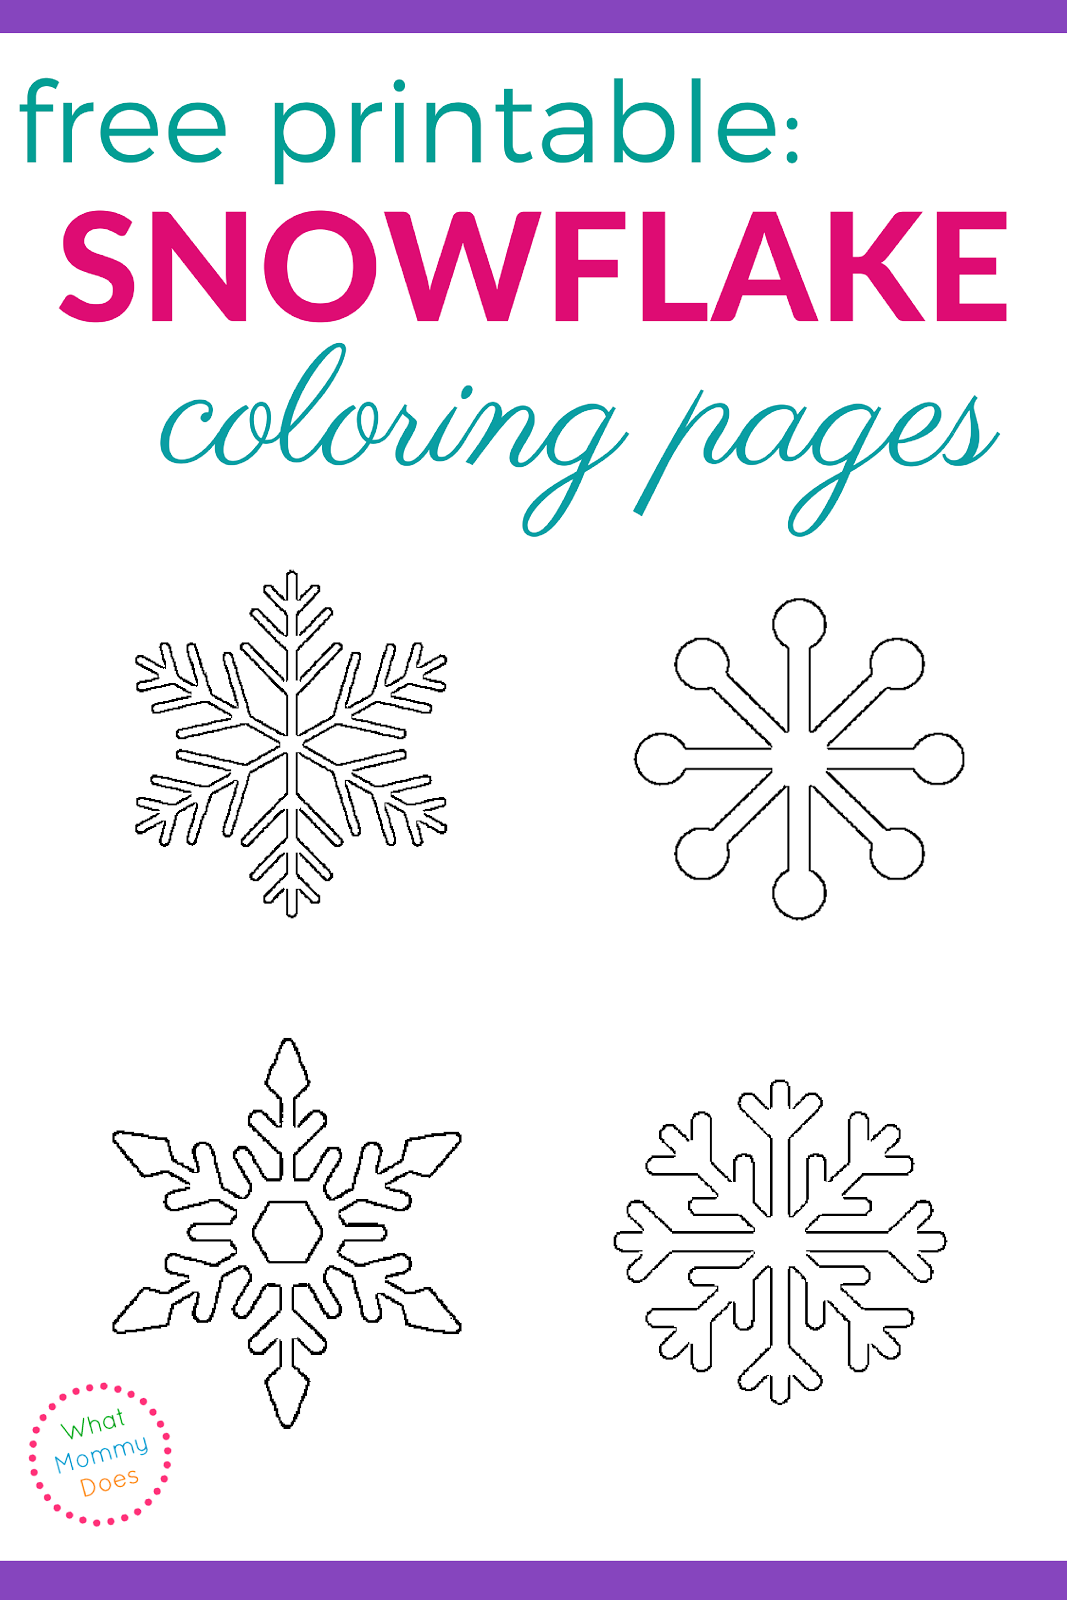 grab these free printable snowflake color pages they make great snowflake crafts for kids in